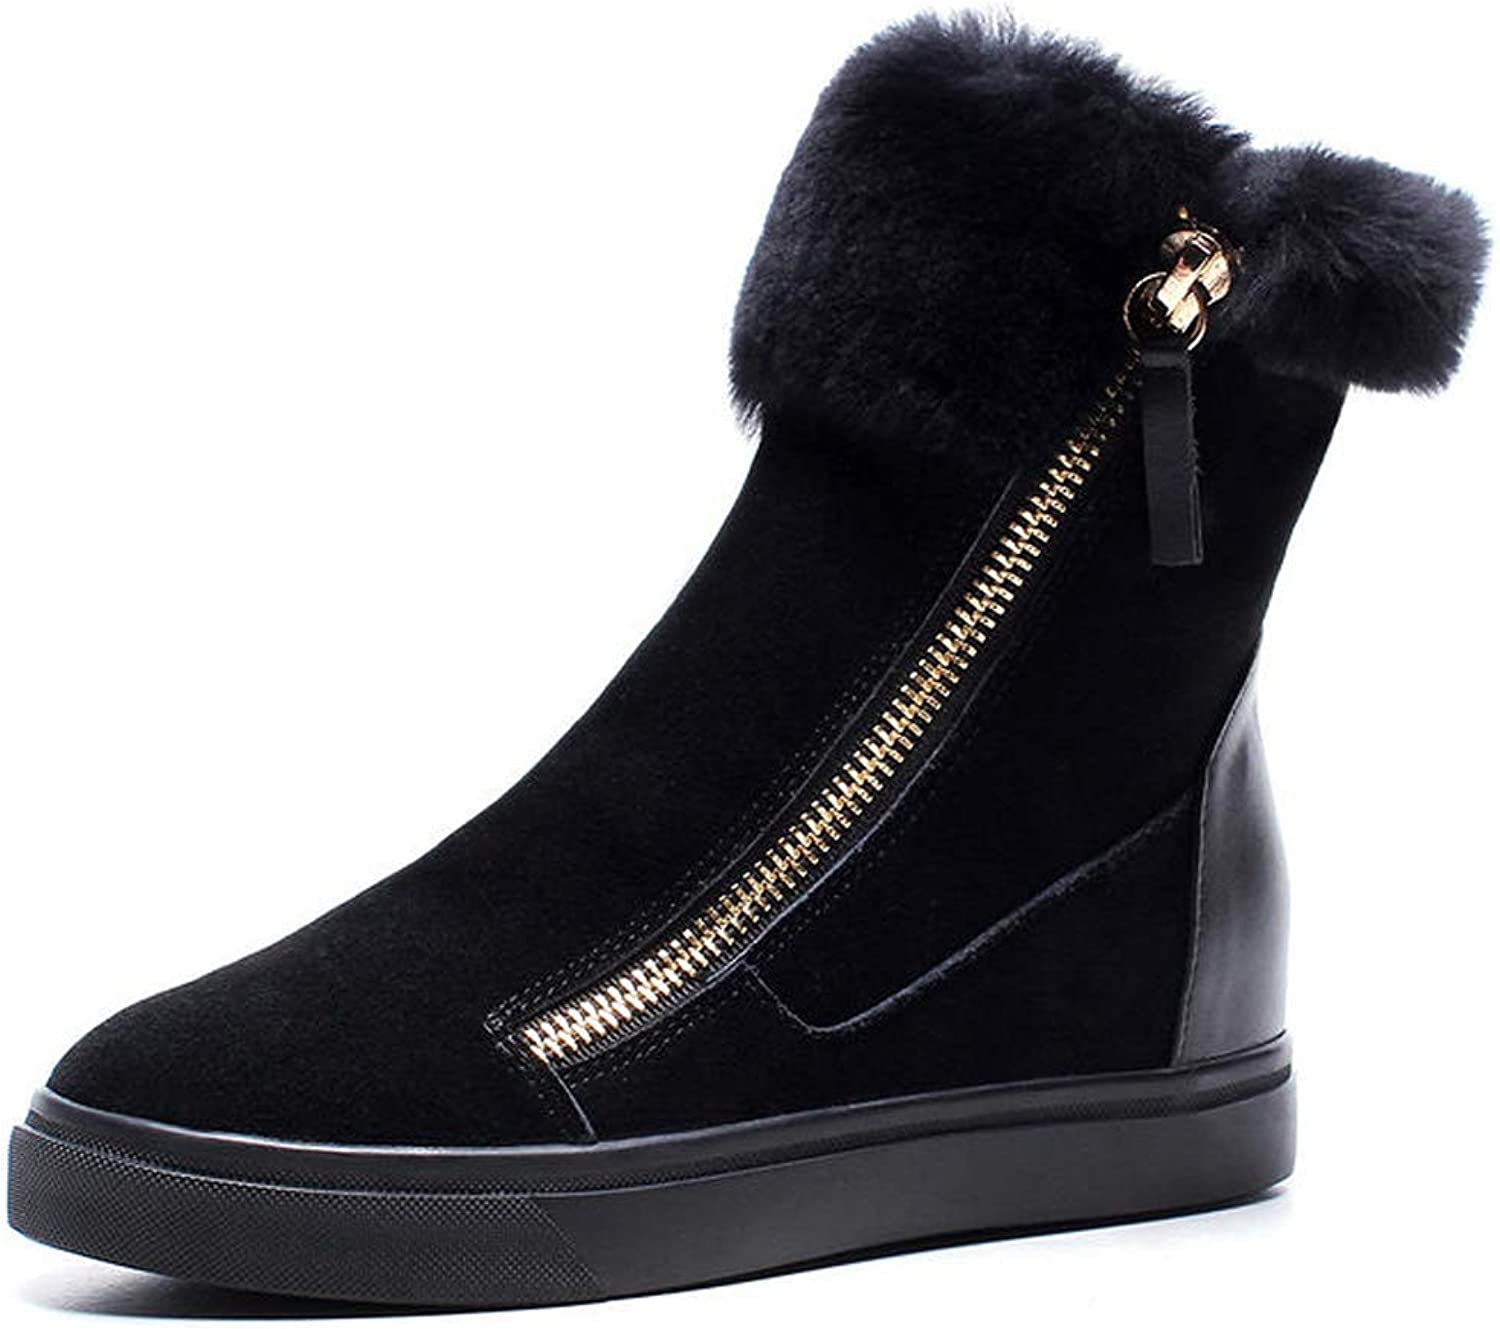 Womens shoes Winter Flat Heel Ankle Boots Ladies High-Top Zipper Warm Booties High-Top shoes for Fall Winter